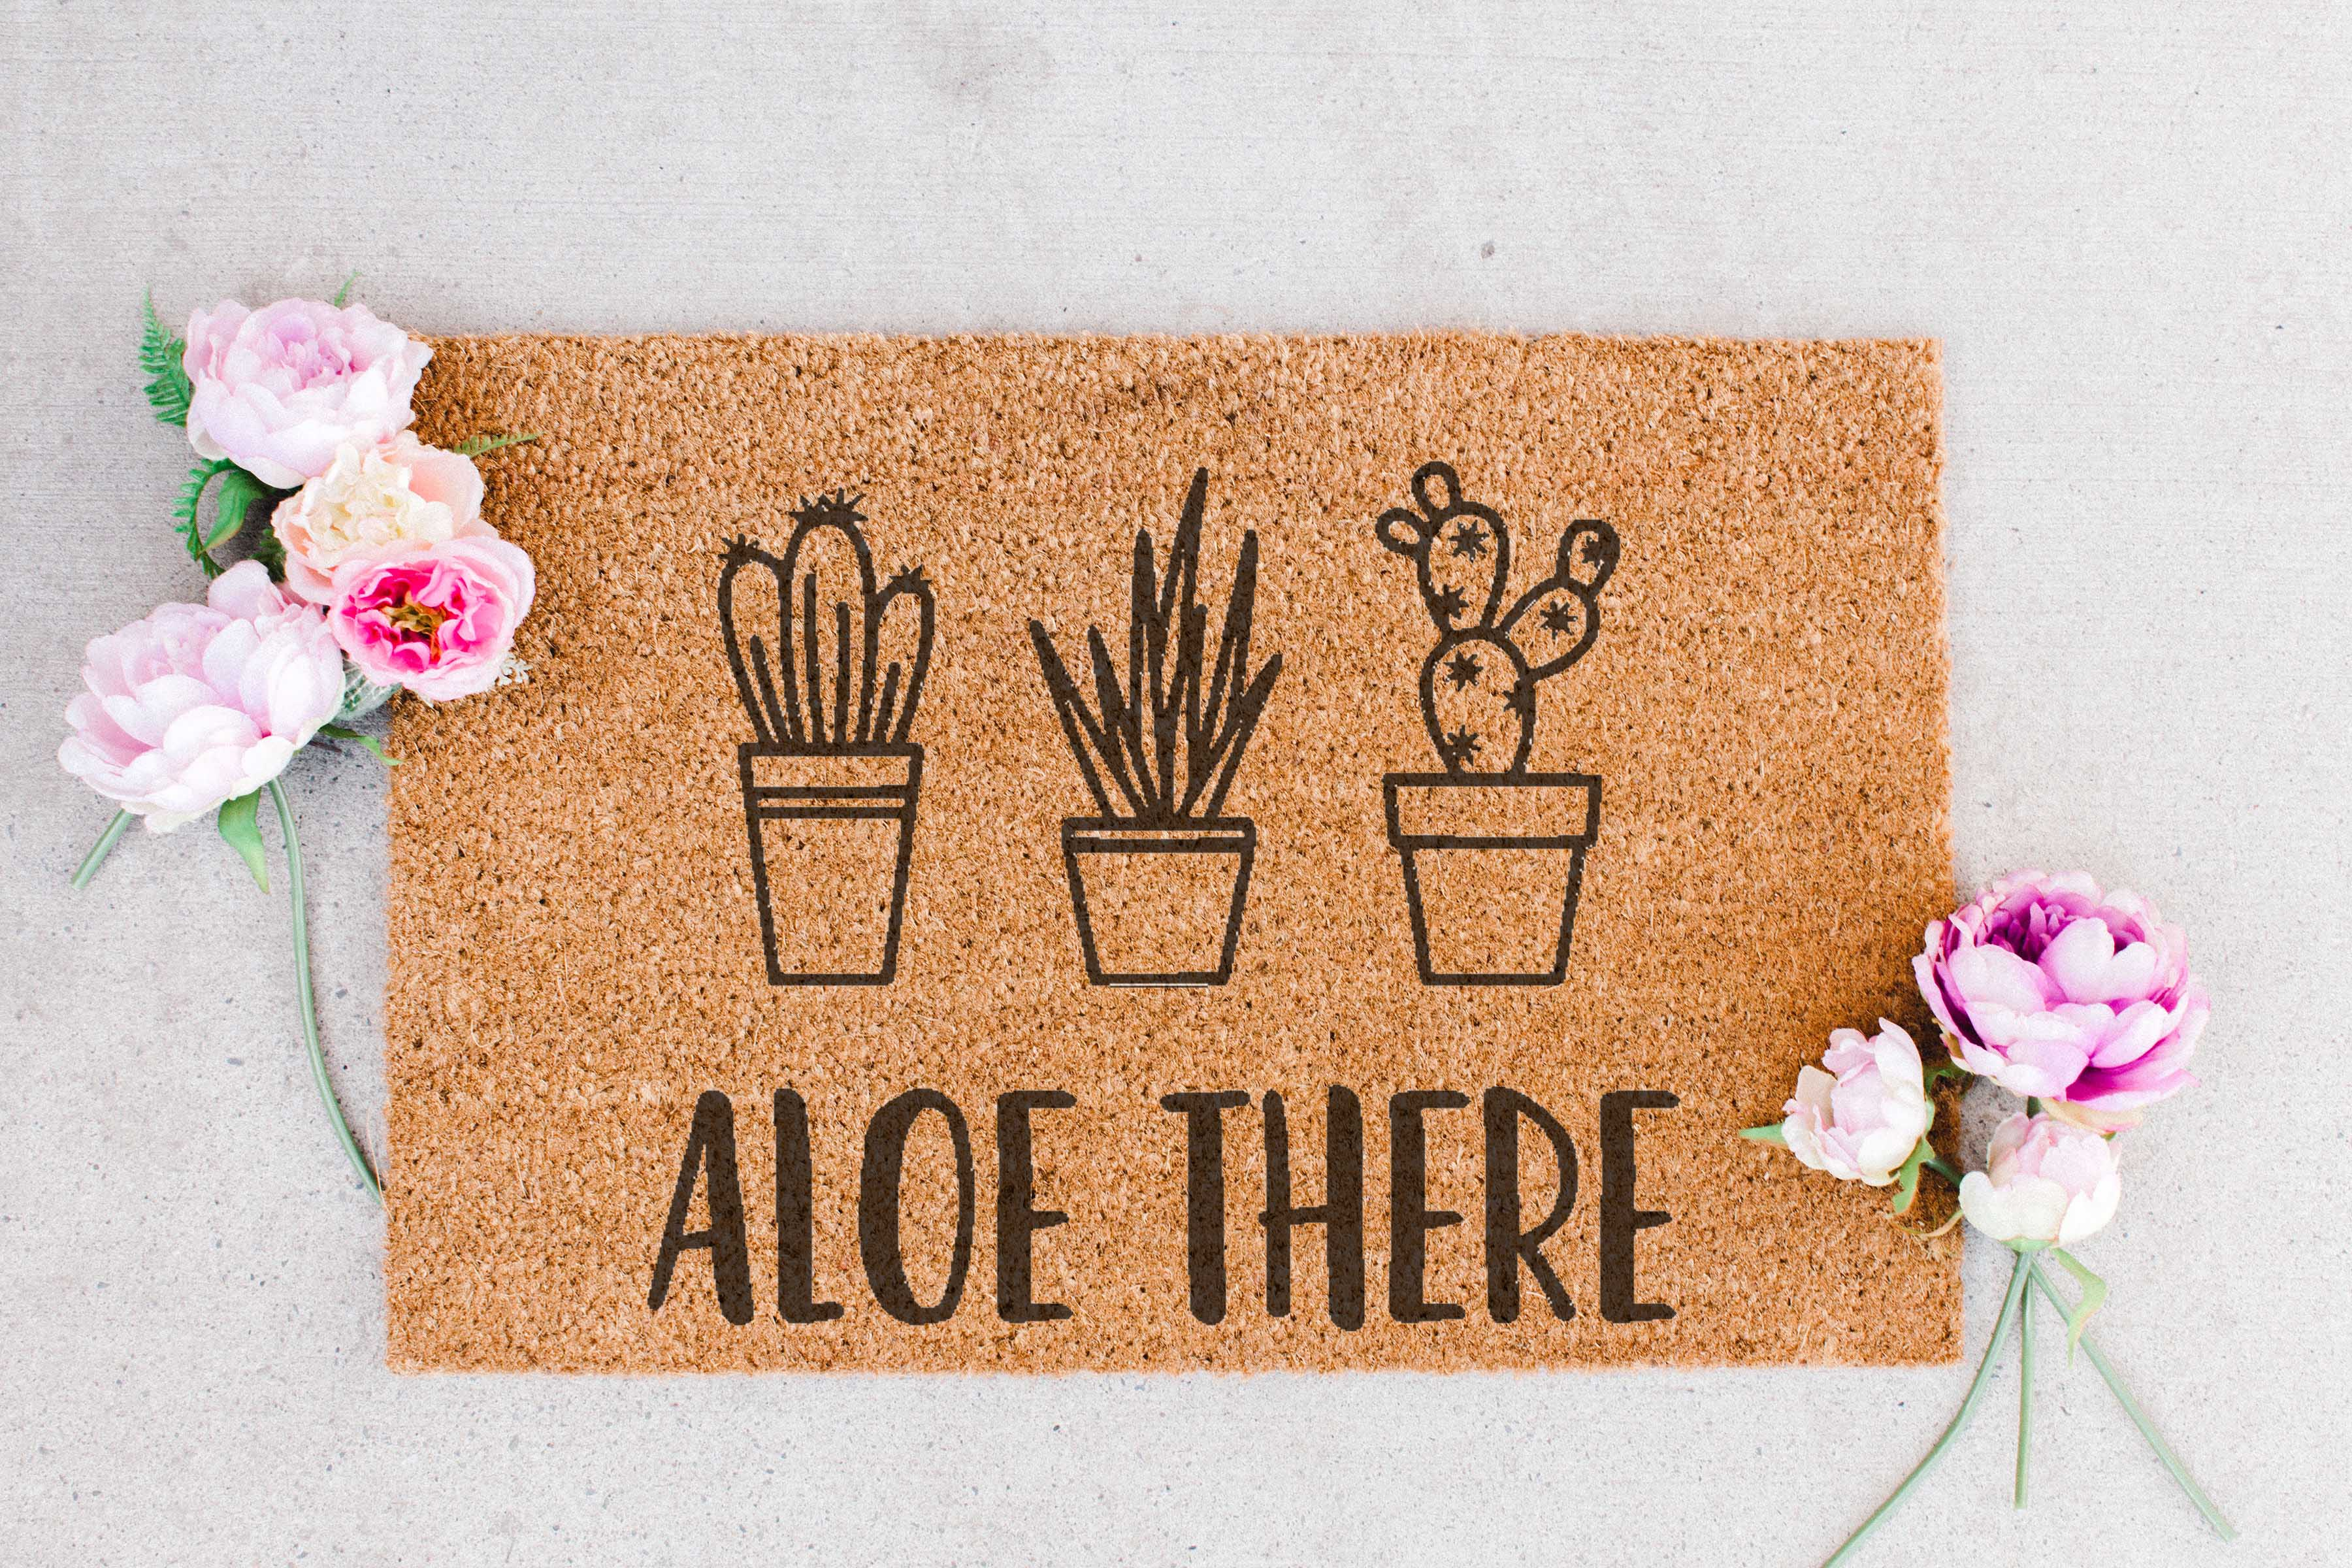 ALOE THERE FLORAL MOCKUP